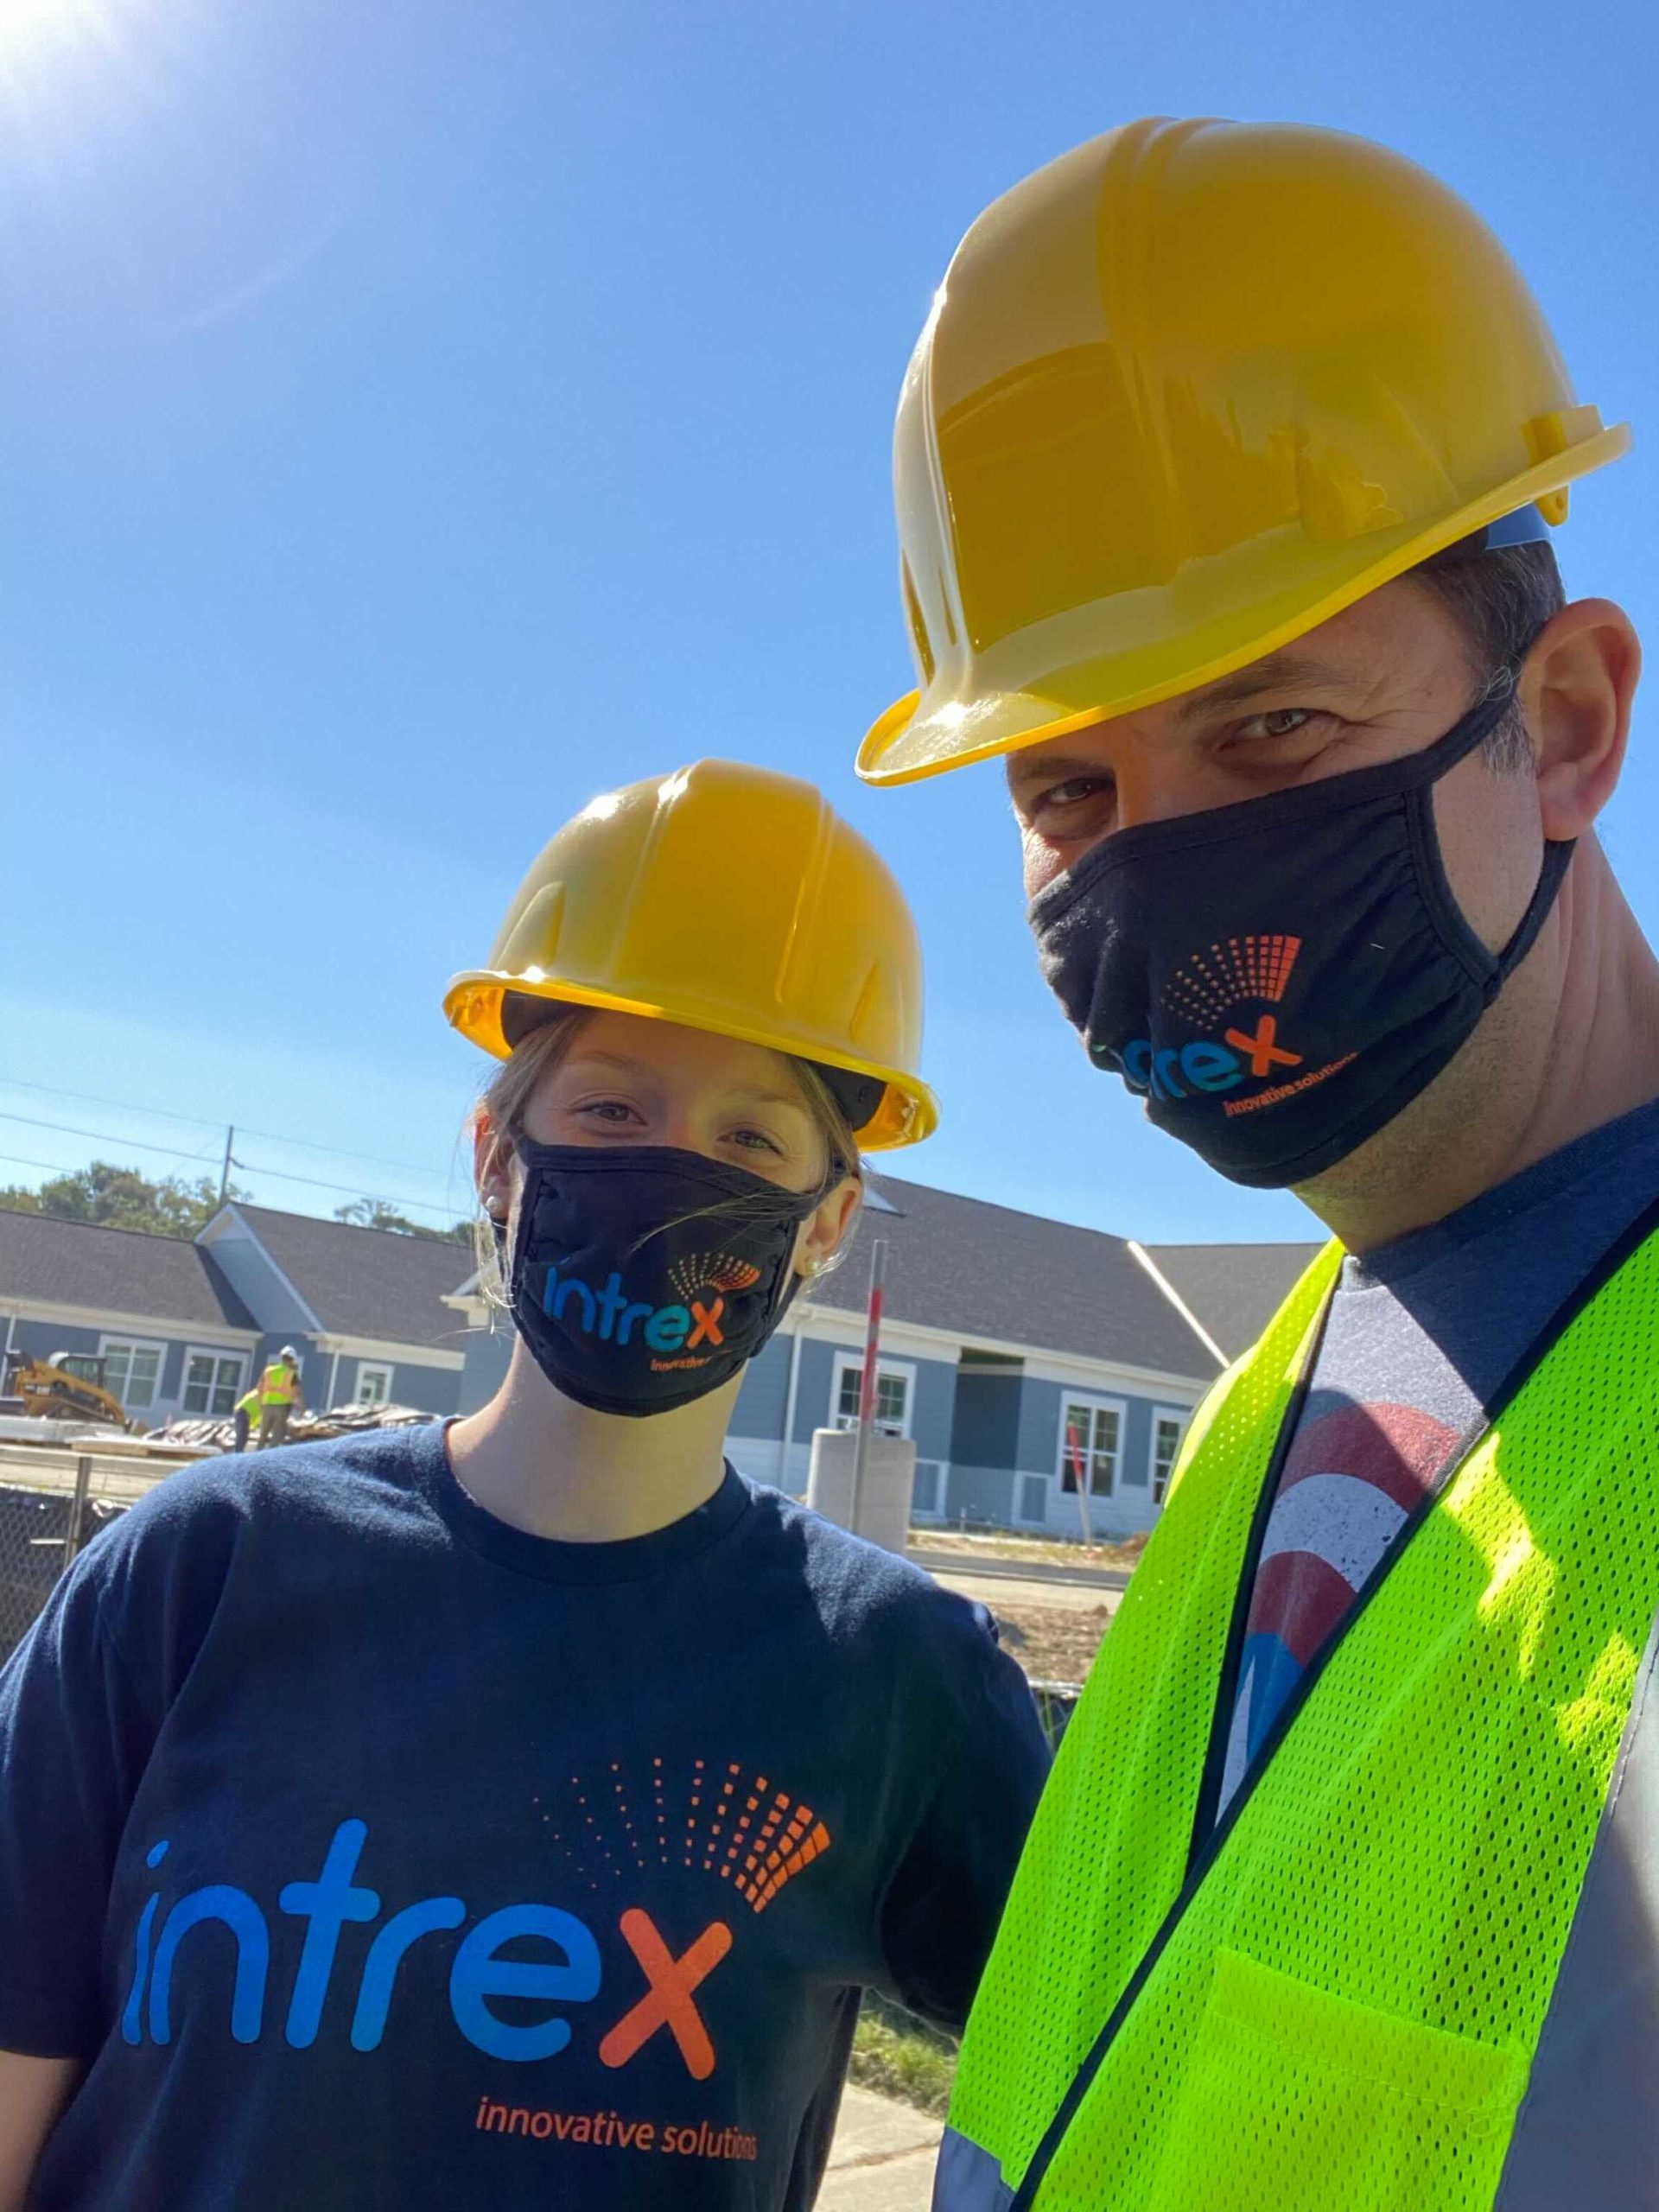 Intrex employees with hard hats and masks at a new construction site